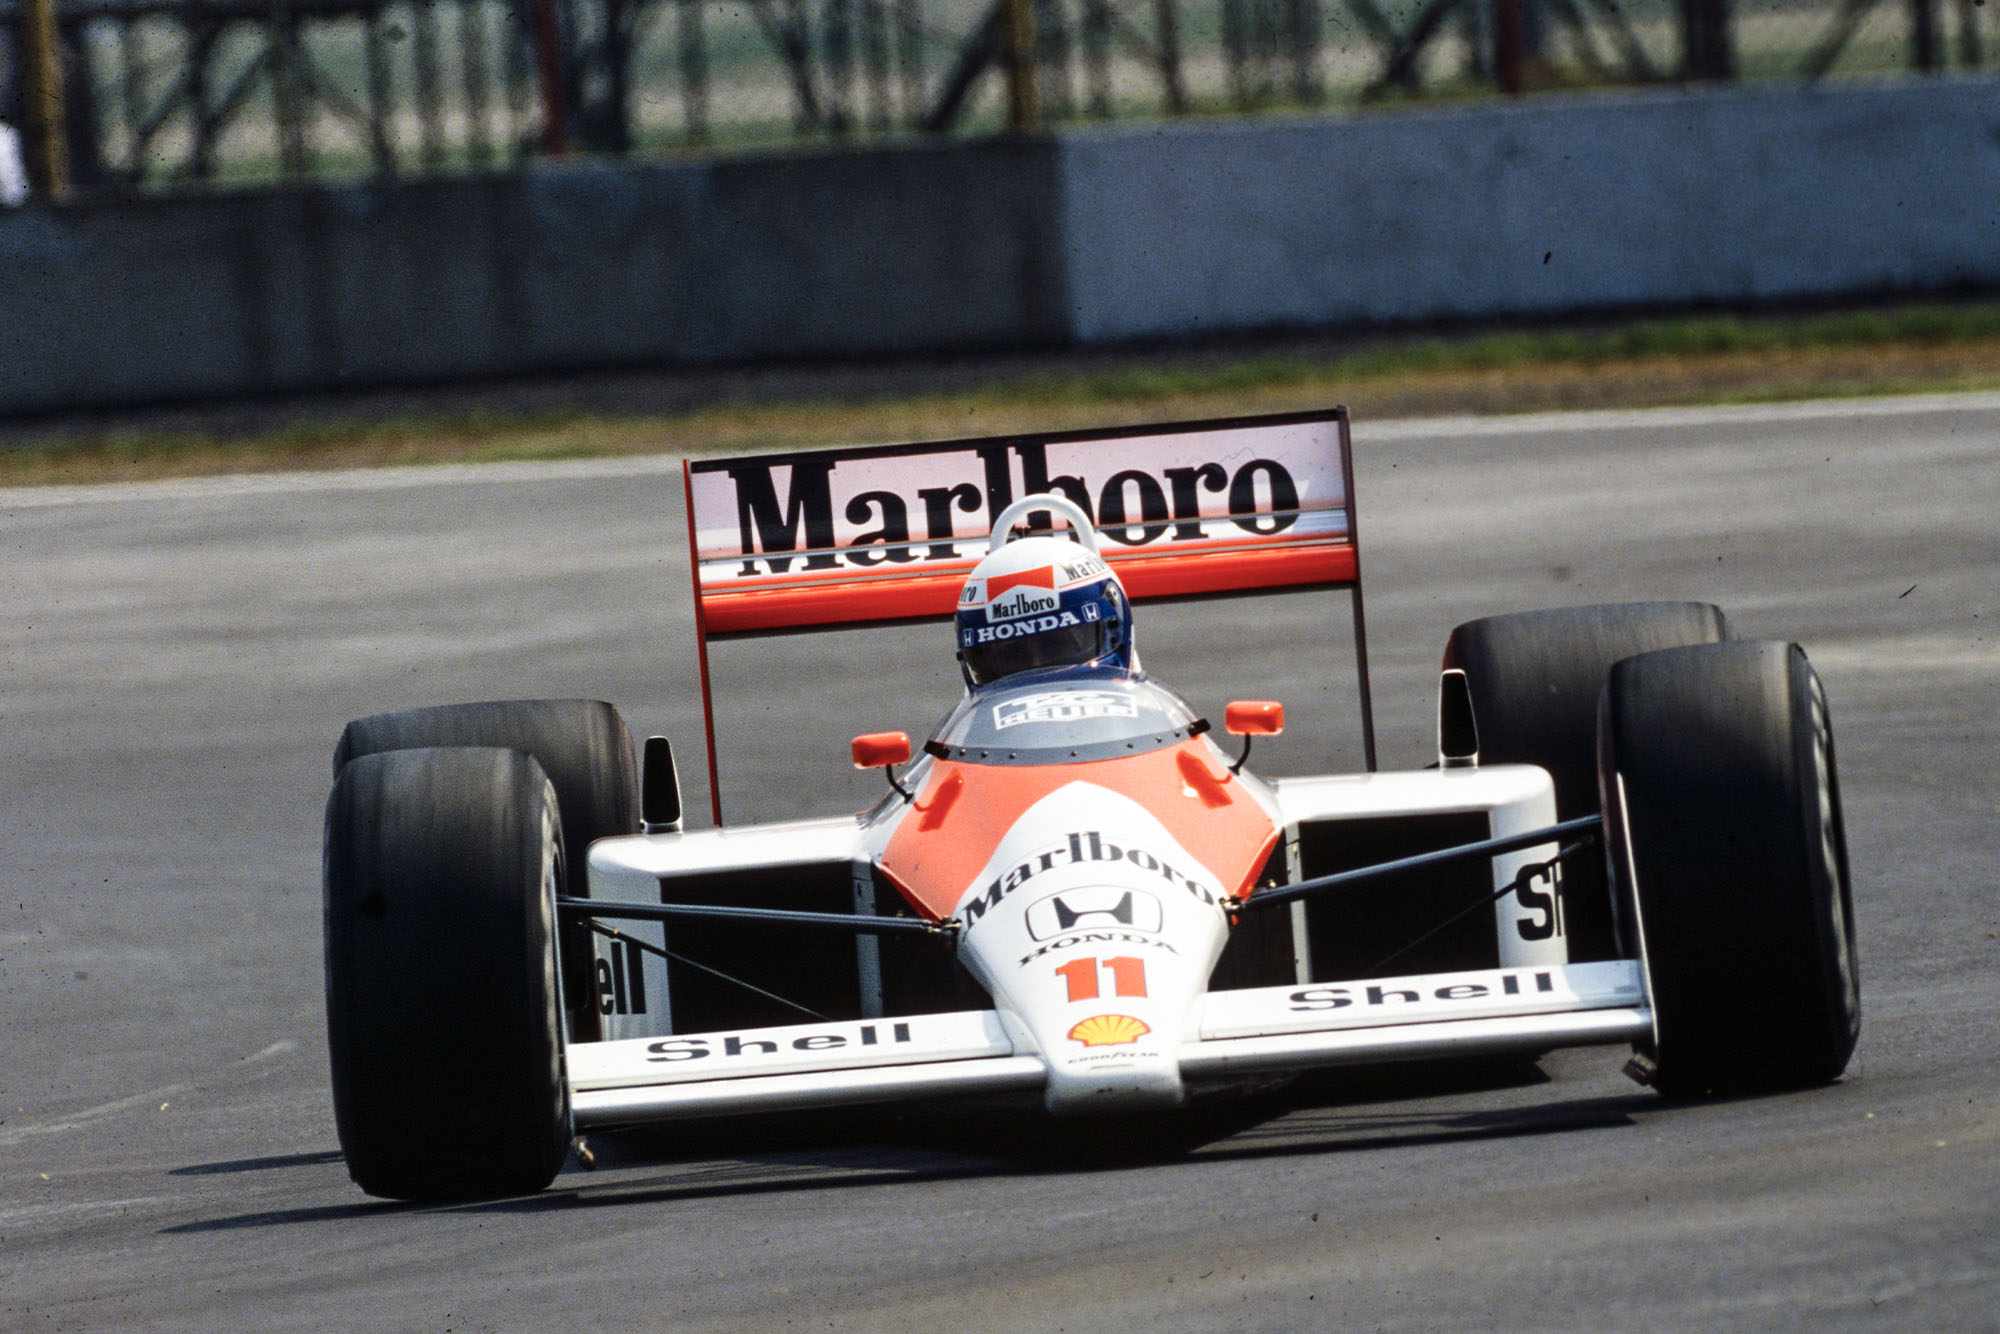 1988 MEX GP feature